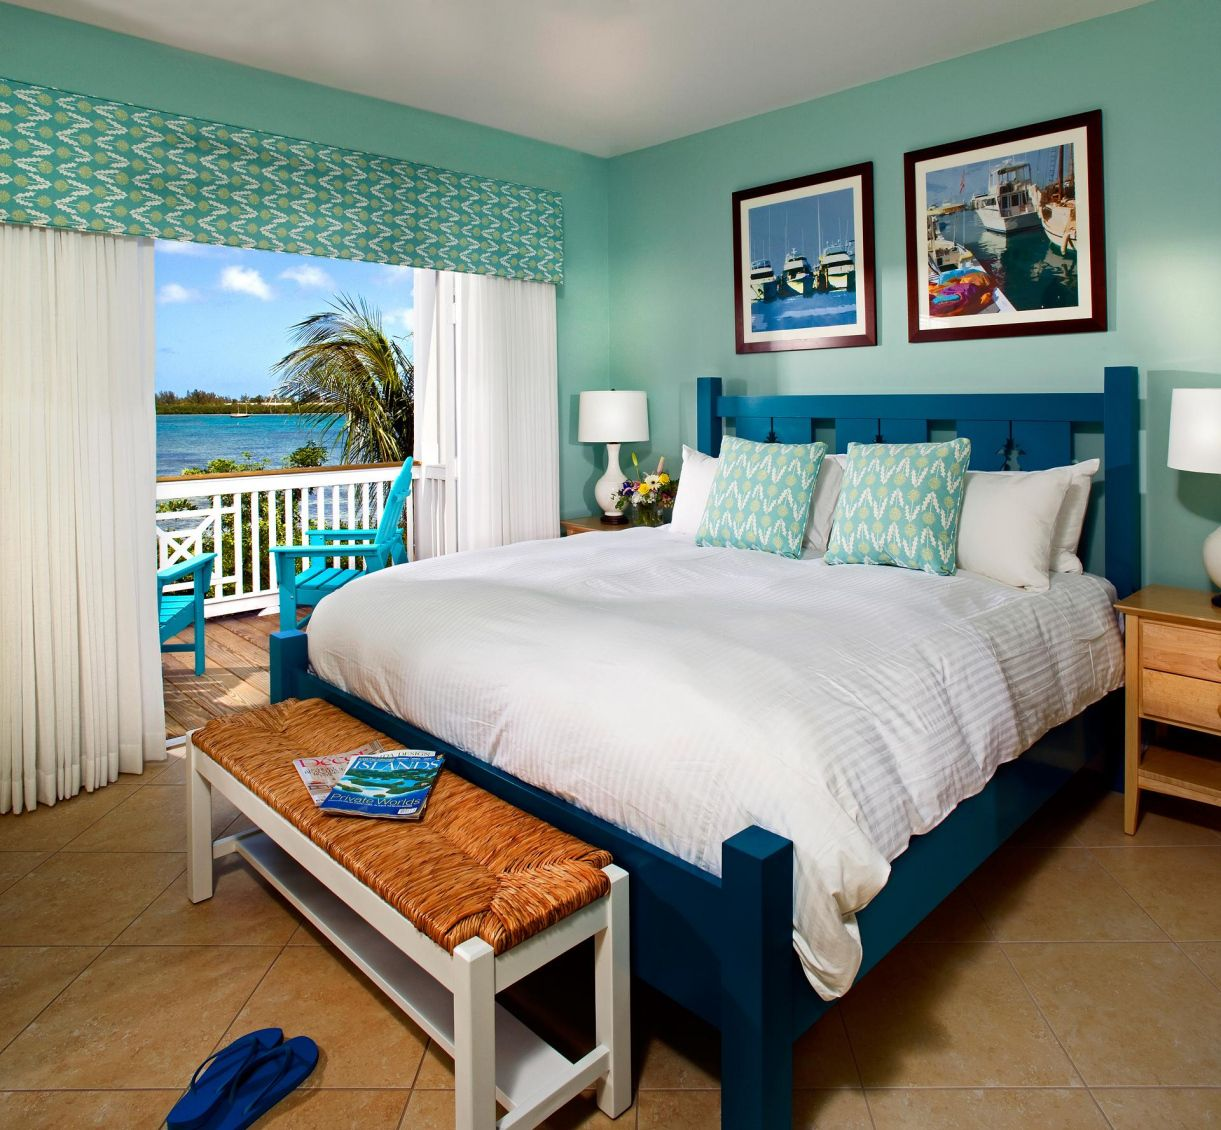 I Will Wake Up To This View Key West Boutique Hotel